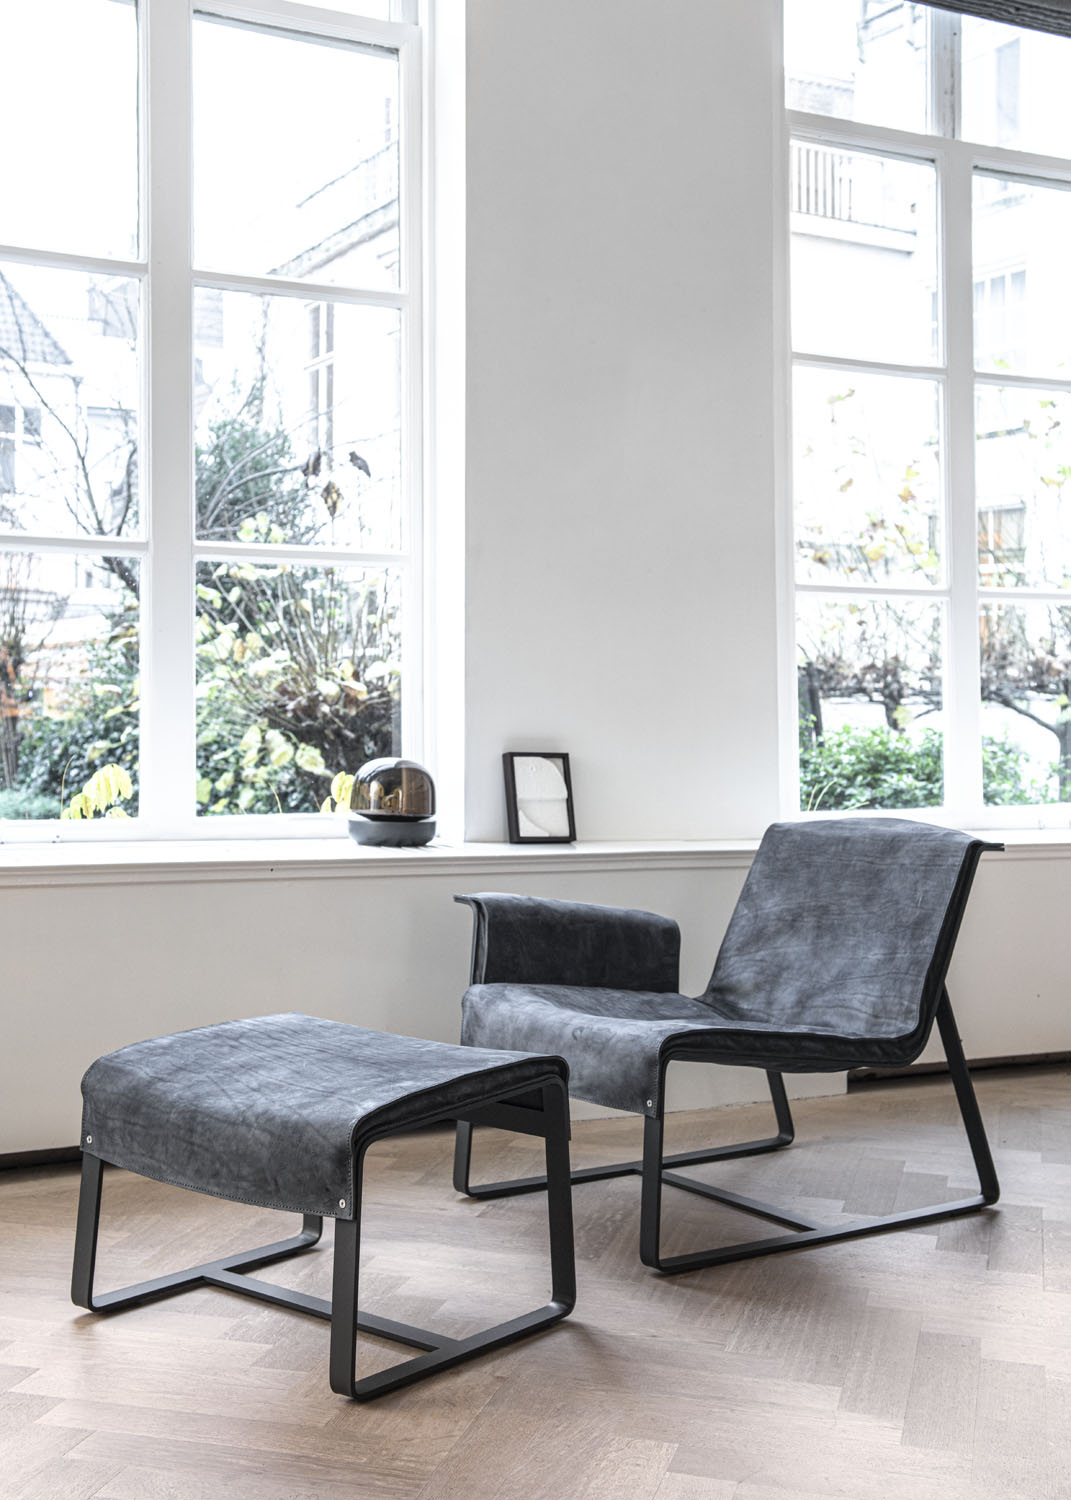 Biennale Interieur - Belgium's leading design and interior event - Founded-loungechair-anthracite-1.jpg